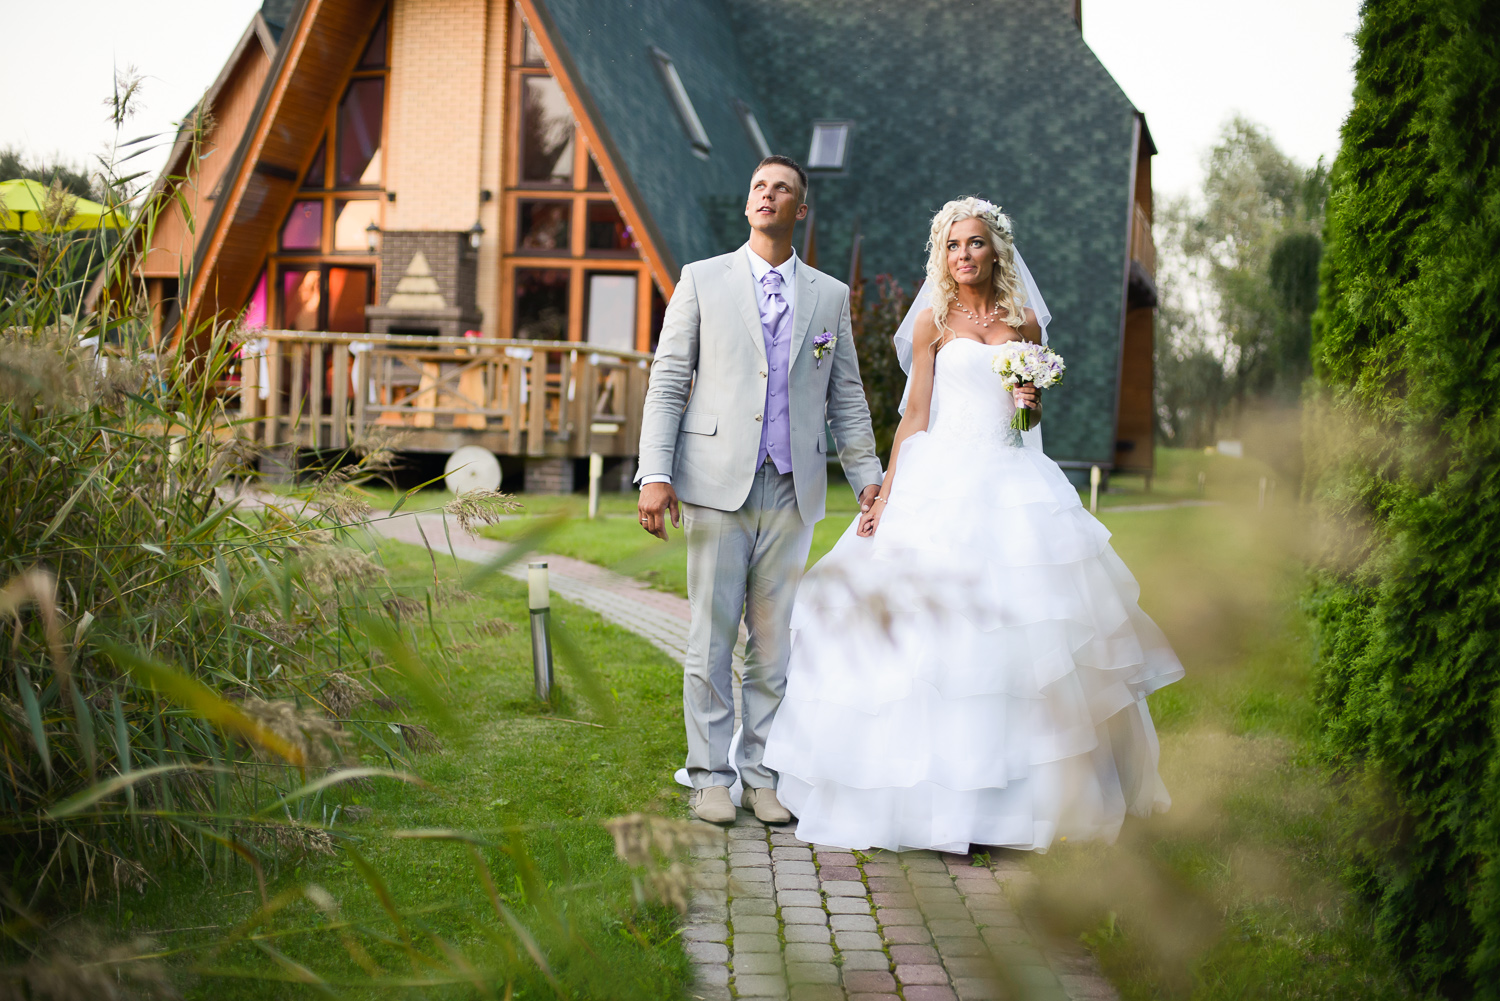 Kāzu foto | Wedding photo